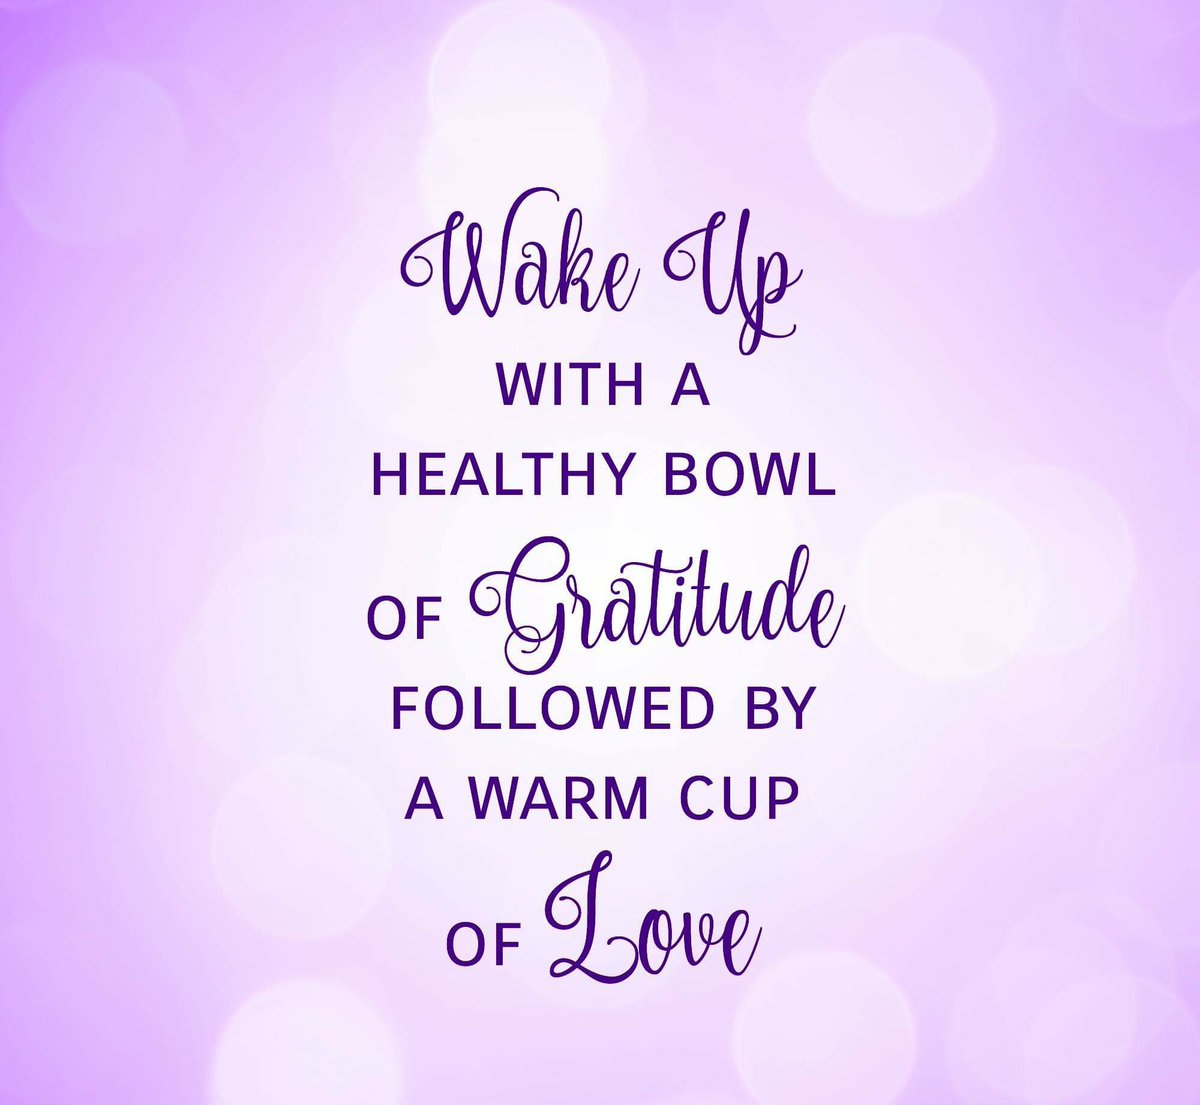 #WakeUp With A Healthy Bowl Of #Gratitude  Followed By A Warm Cup Of #LOVE  #inspiringquotes  #WednesdayThoughts  #QuoteOfTheDay  #FamilyTrain #JoyTRAIN #quotestoliveby  #ThinkBigSundaywithMarsha<br>http://pic.twitter.com/Aq58wtKQvJ